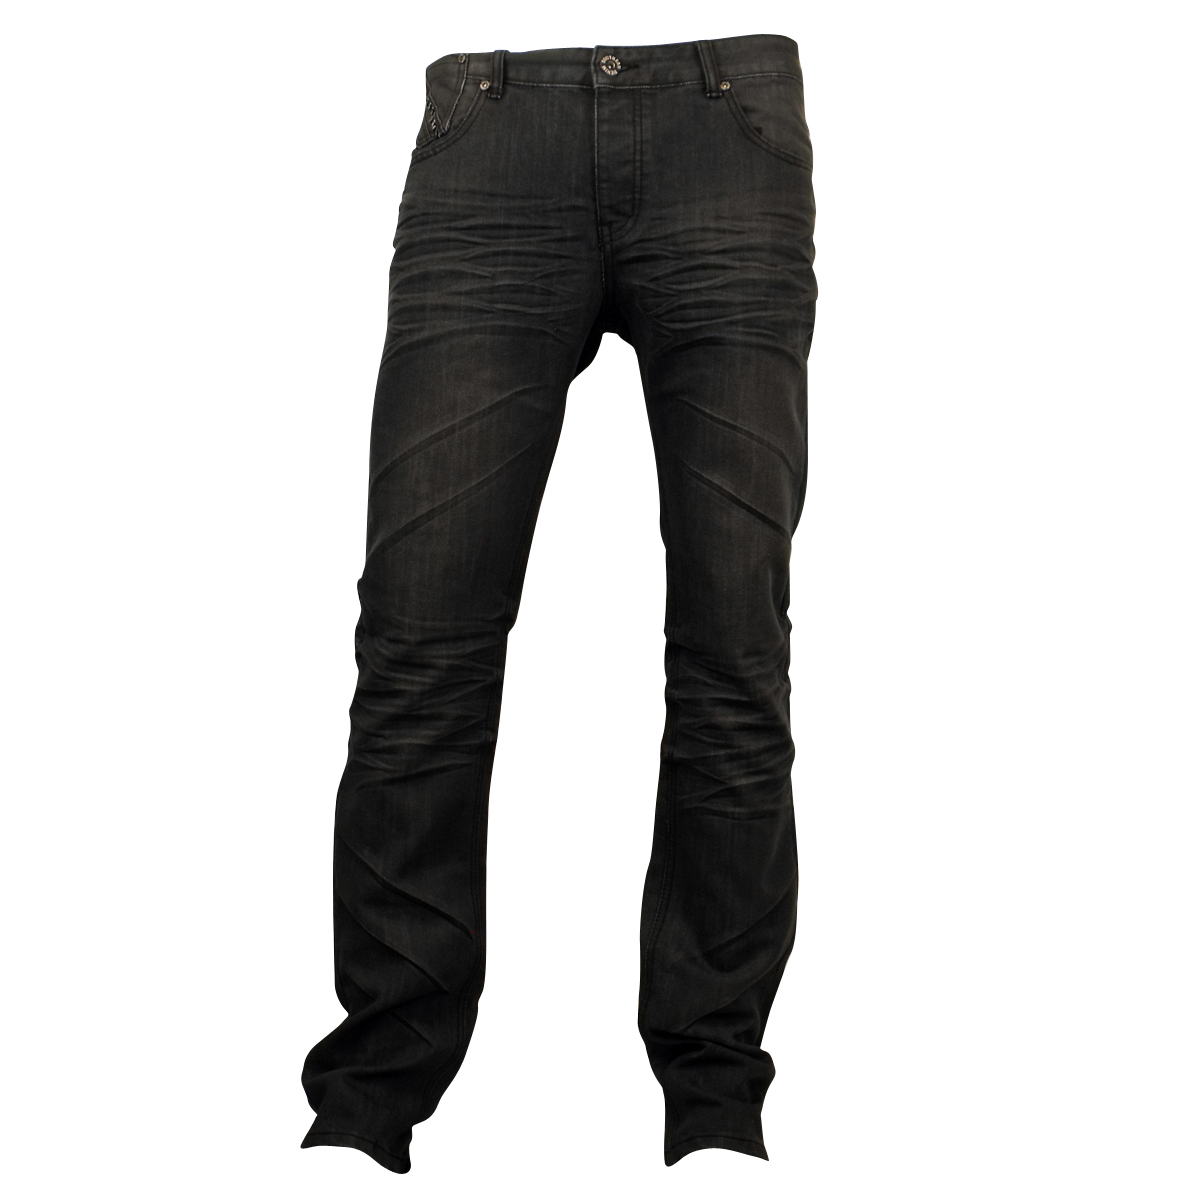 A denim classic, Levi's jeans have been around since when the company patented the first men's work pants made out of denim. With a strong heritage and worldwide success, the brand has a .